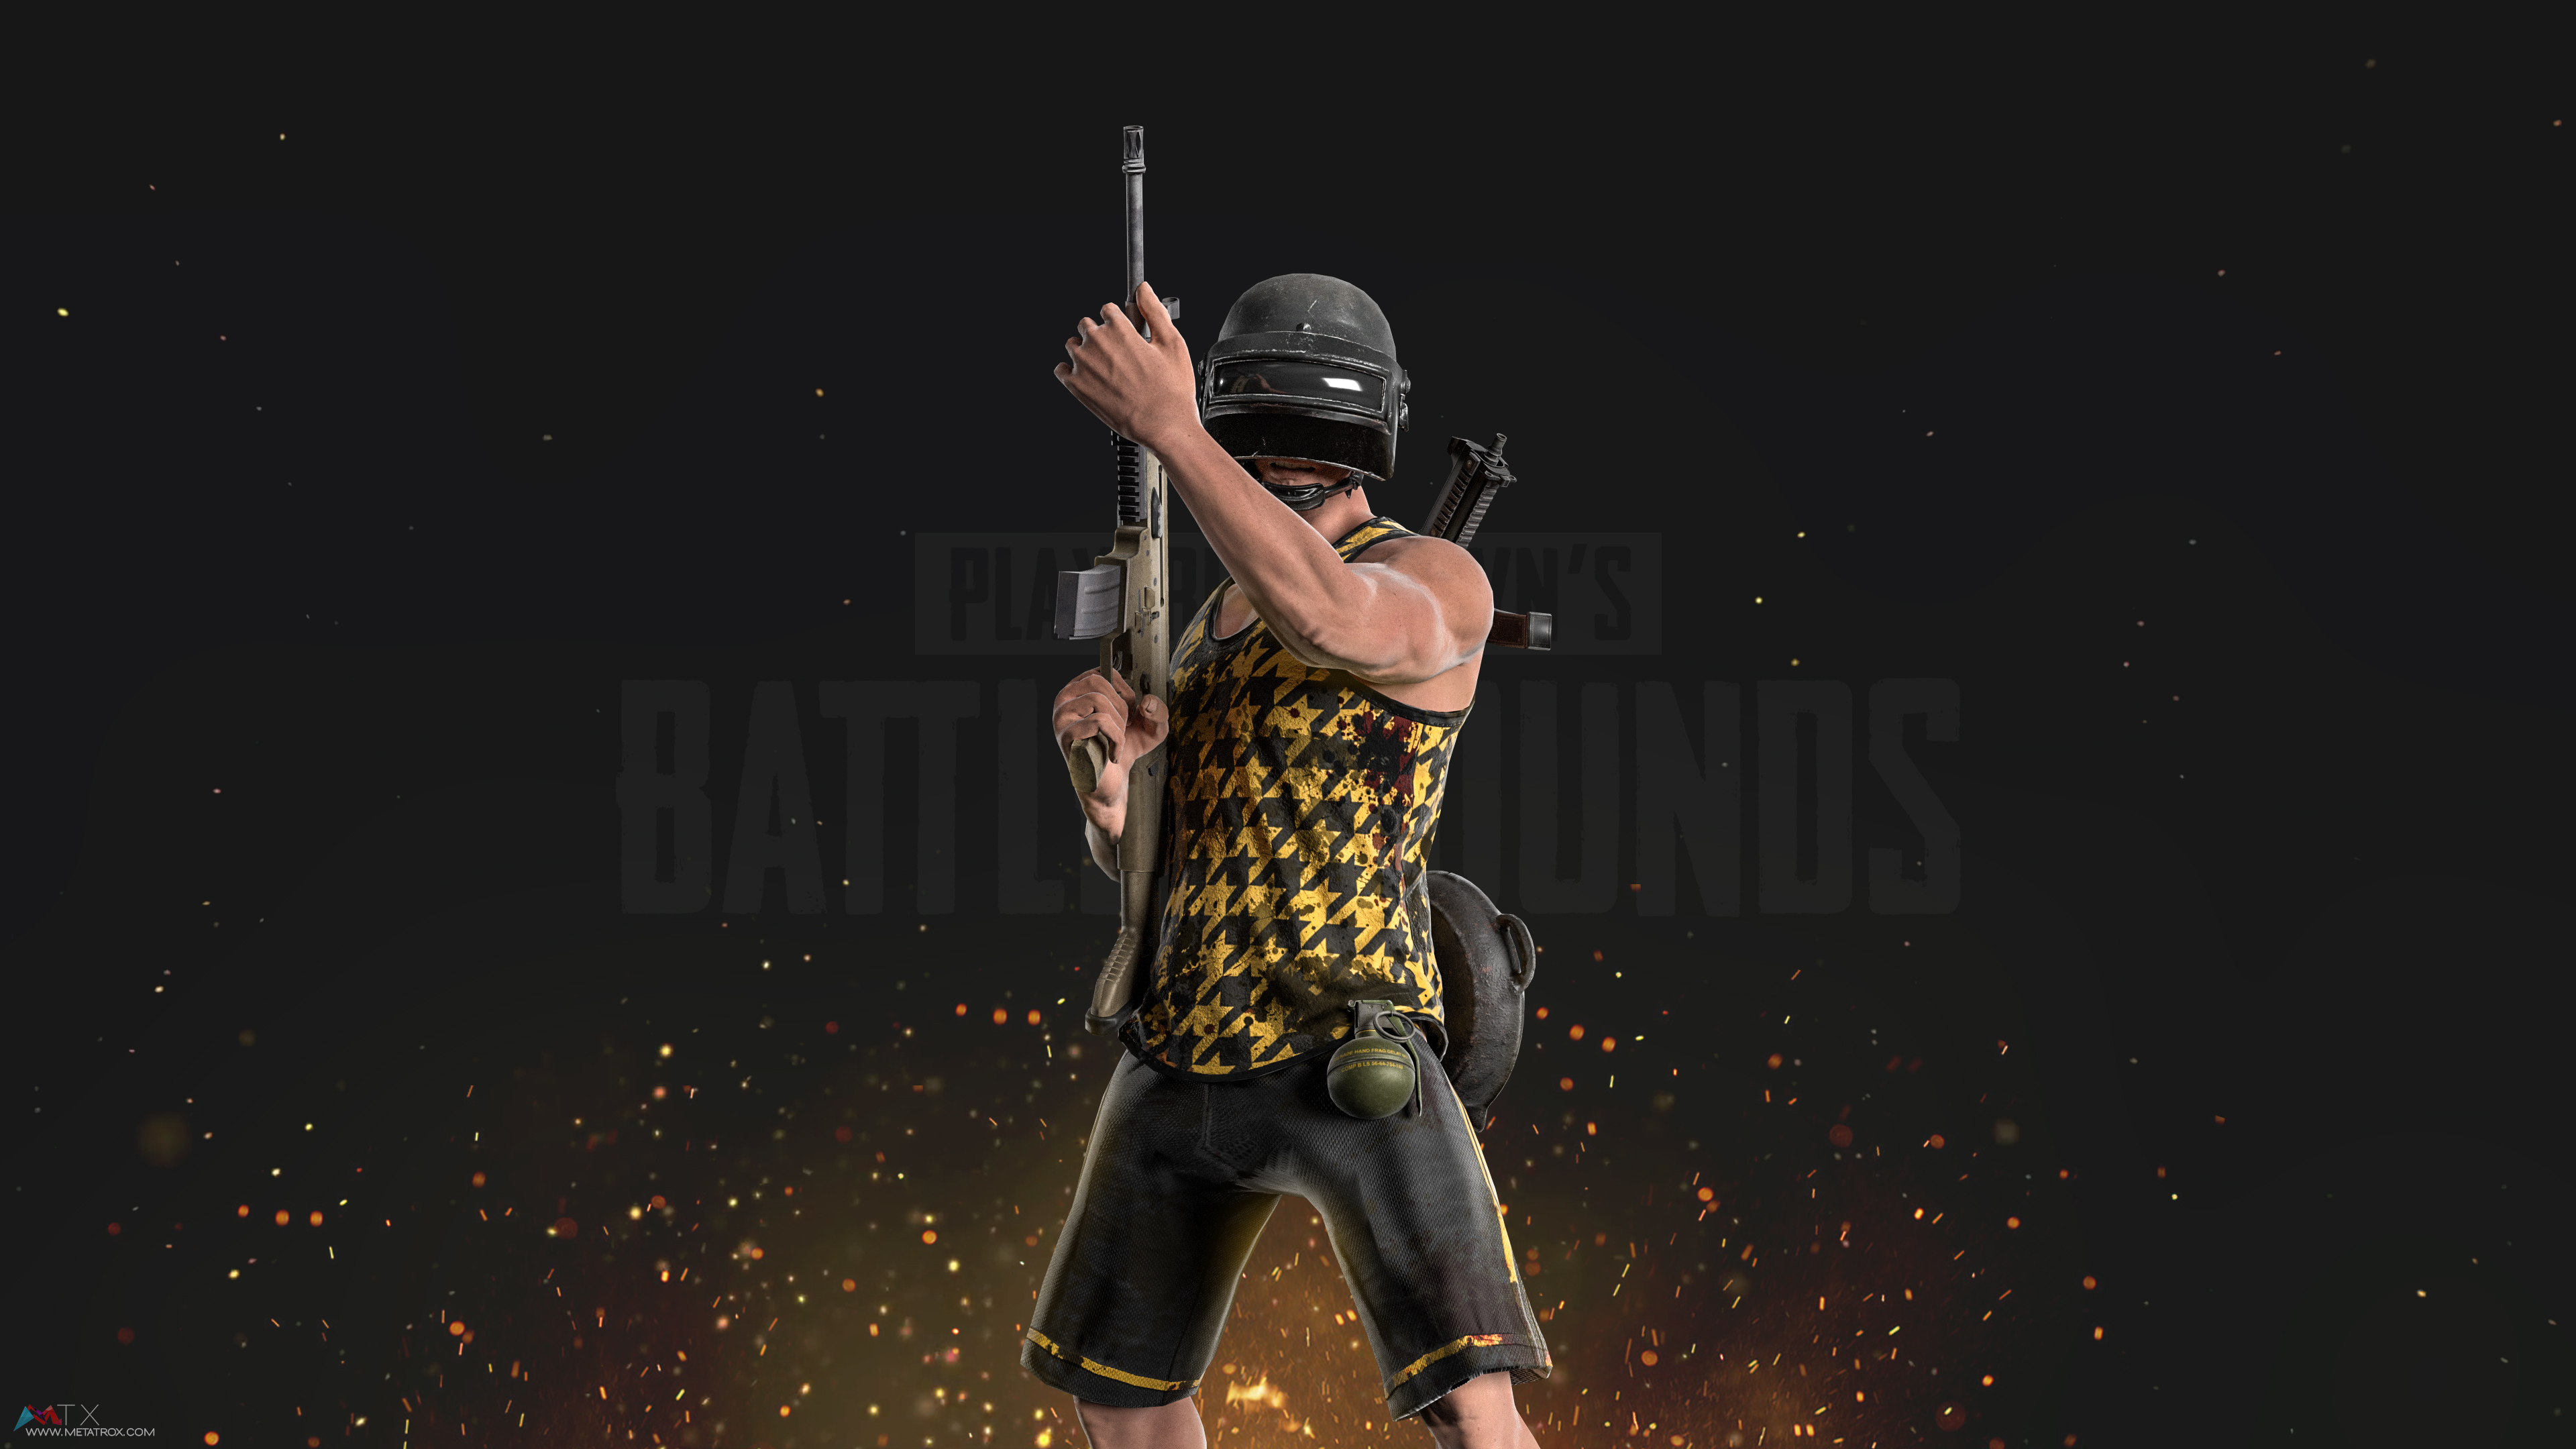 Pubg Full Hd 4k Wallpaper For Mobile: Pubg, HD Games, 4k Wallpapers, Images, Backgrounds, Photos